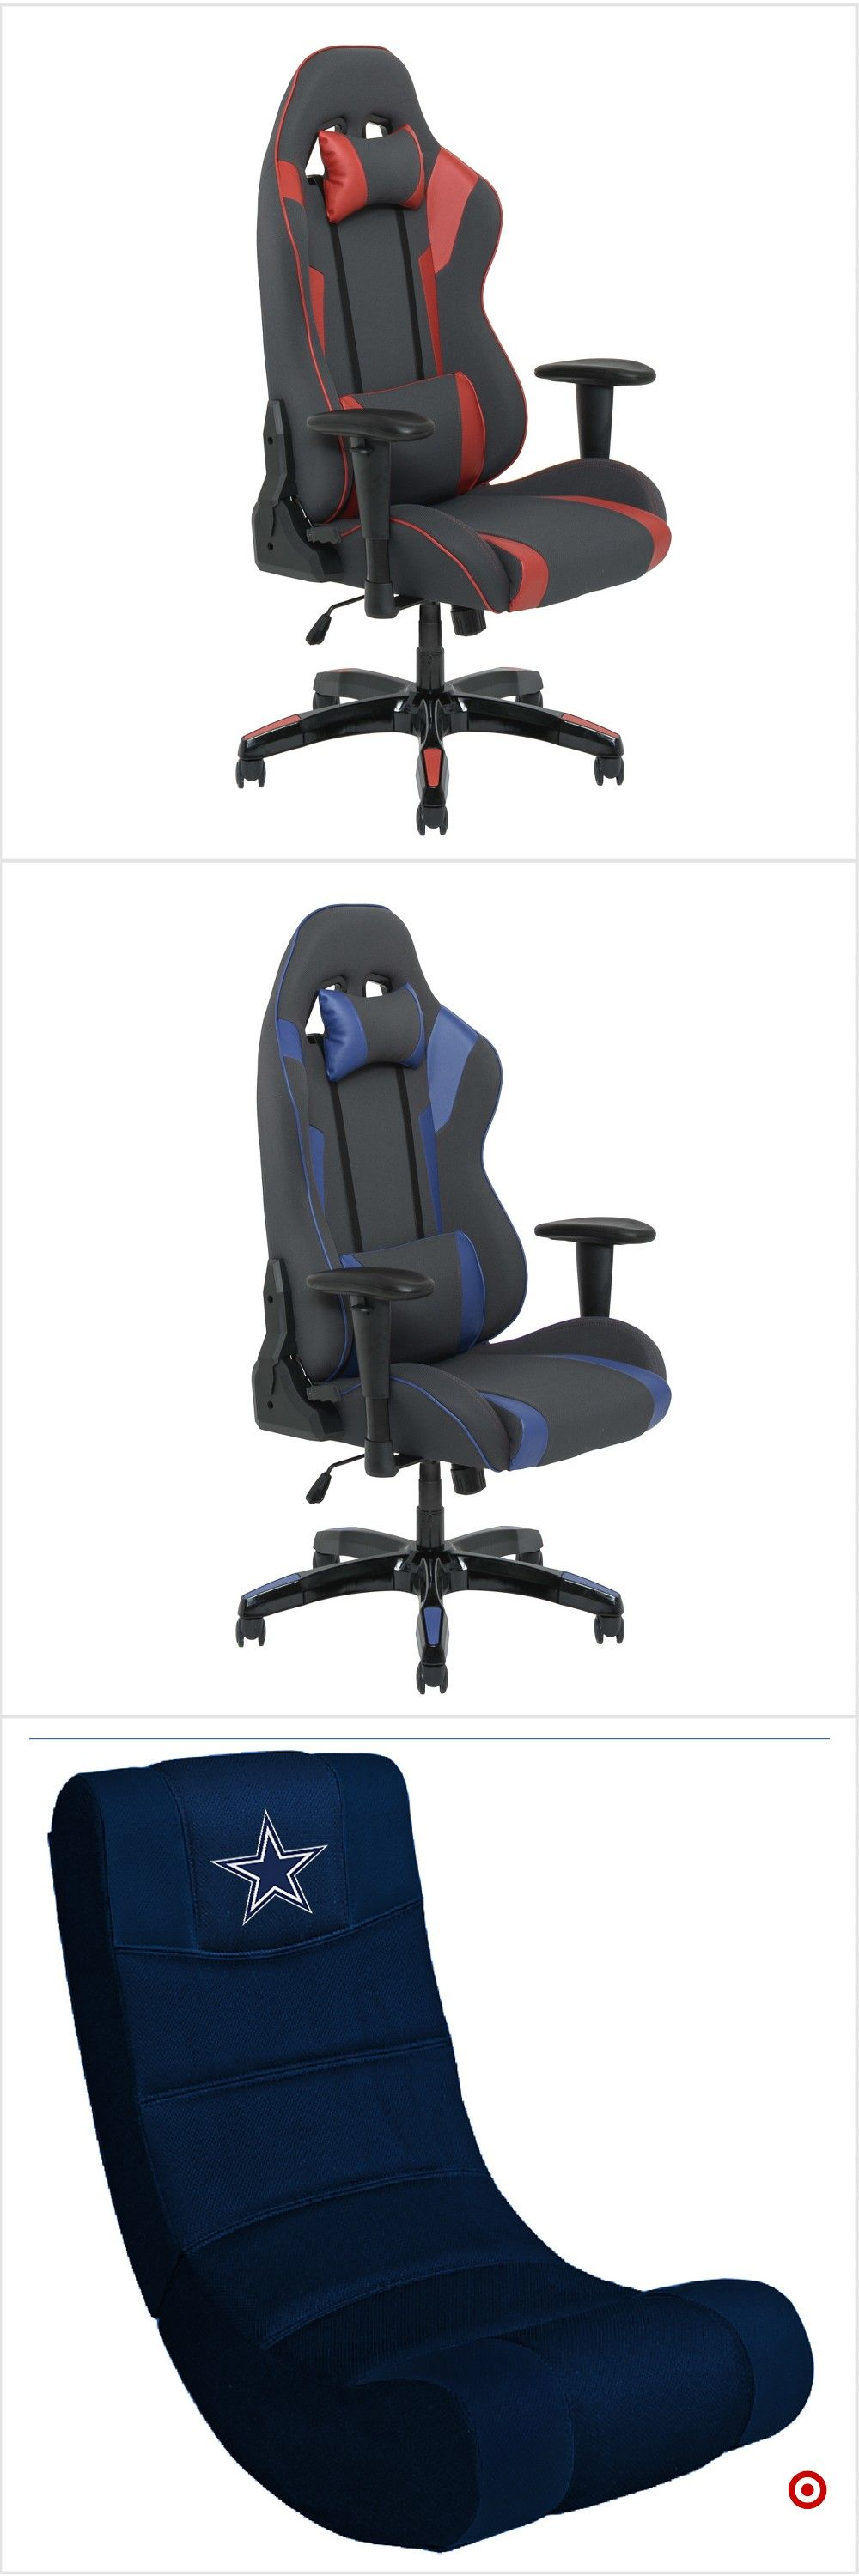 Cool Shop Target For Gaming Chair You Will Love At Great Low Evergreenethics Interior Chair Design Evergreenethicsorg